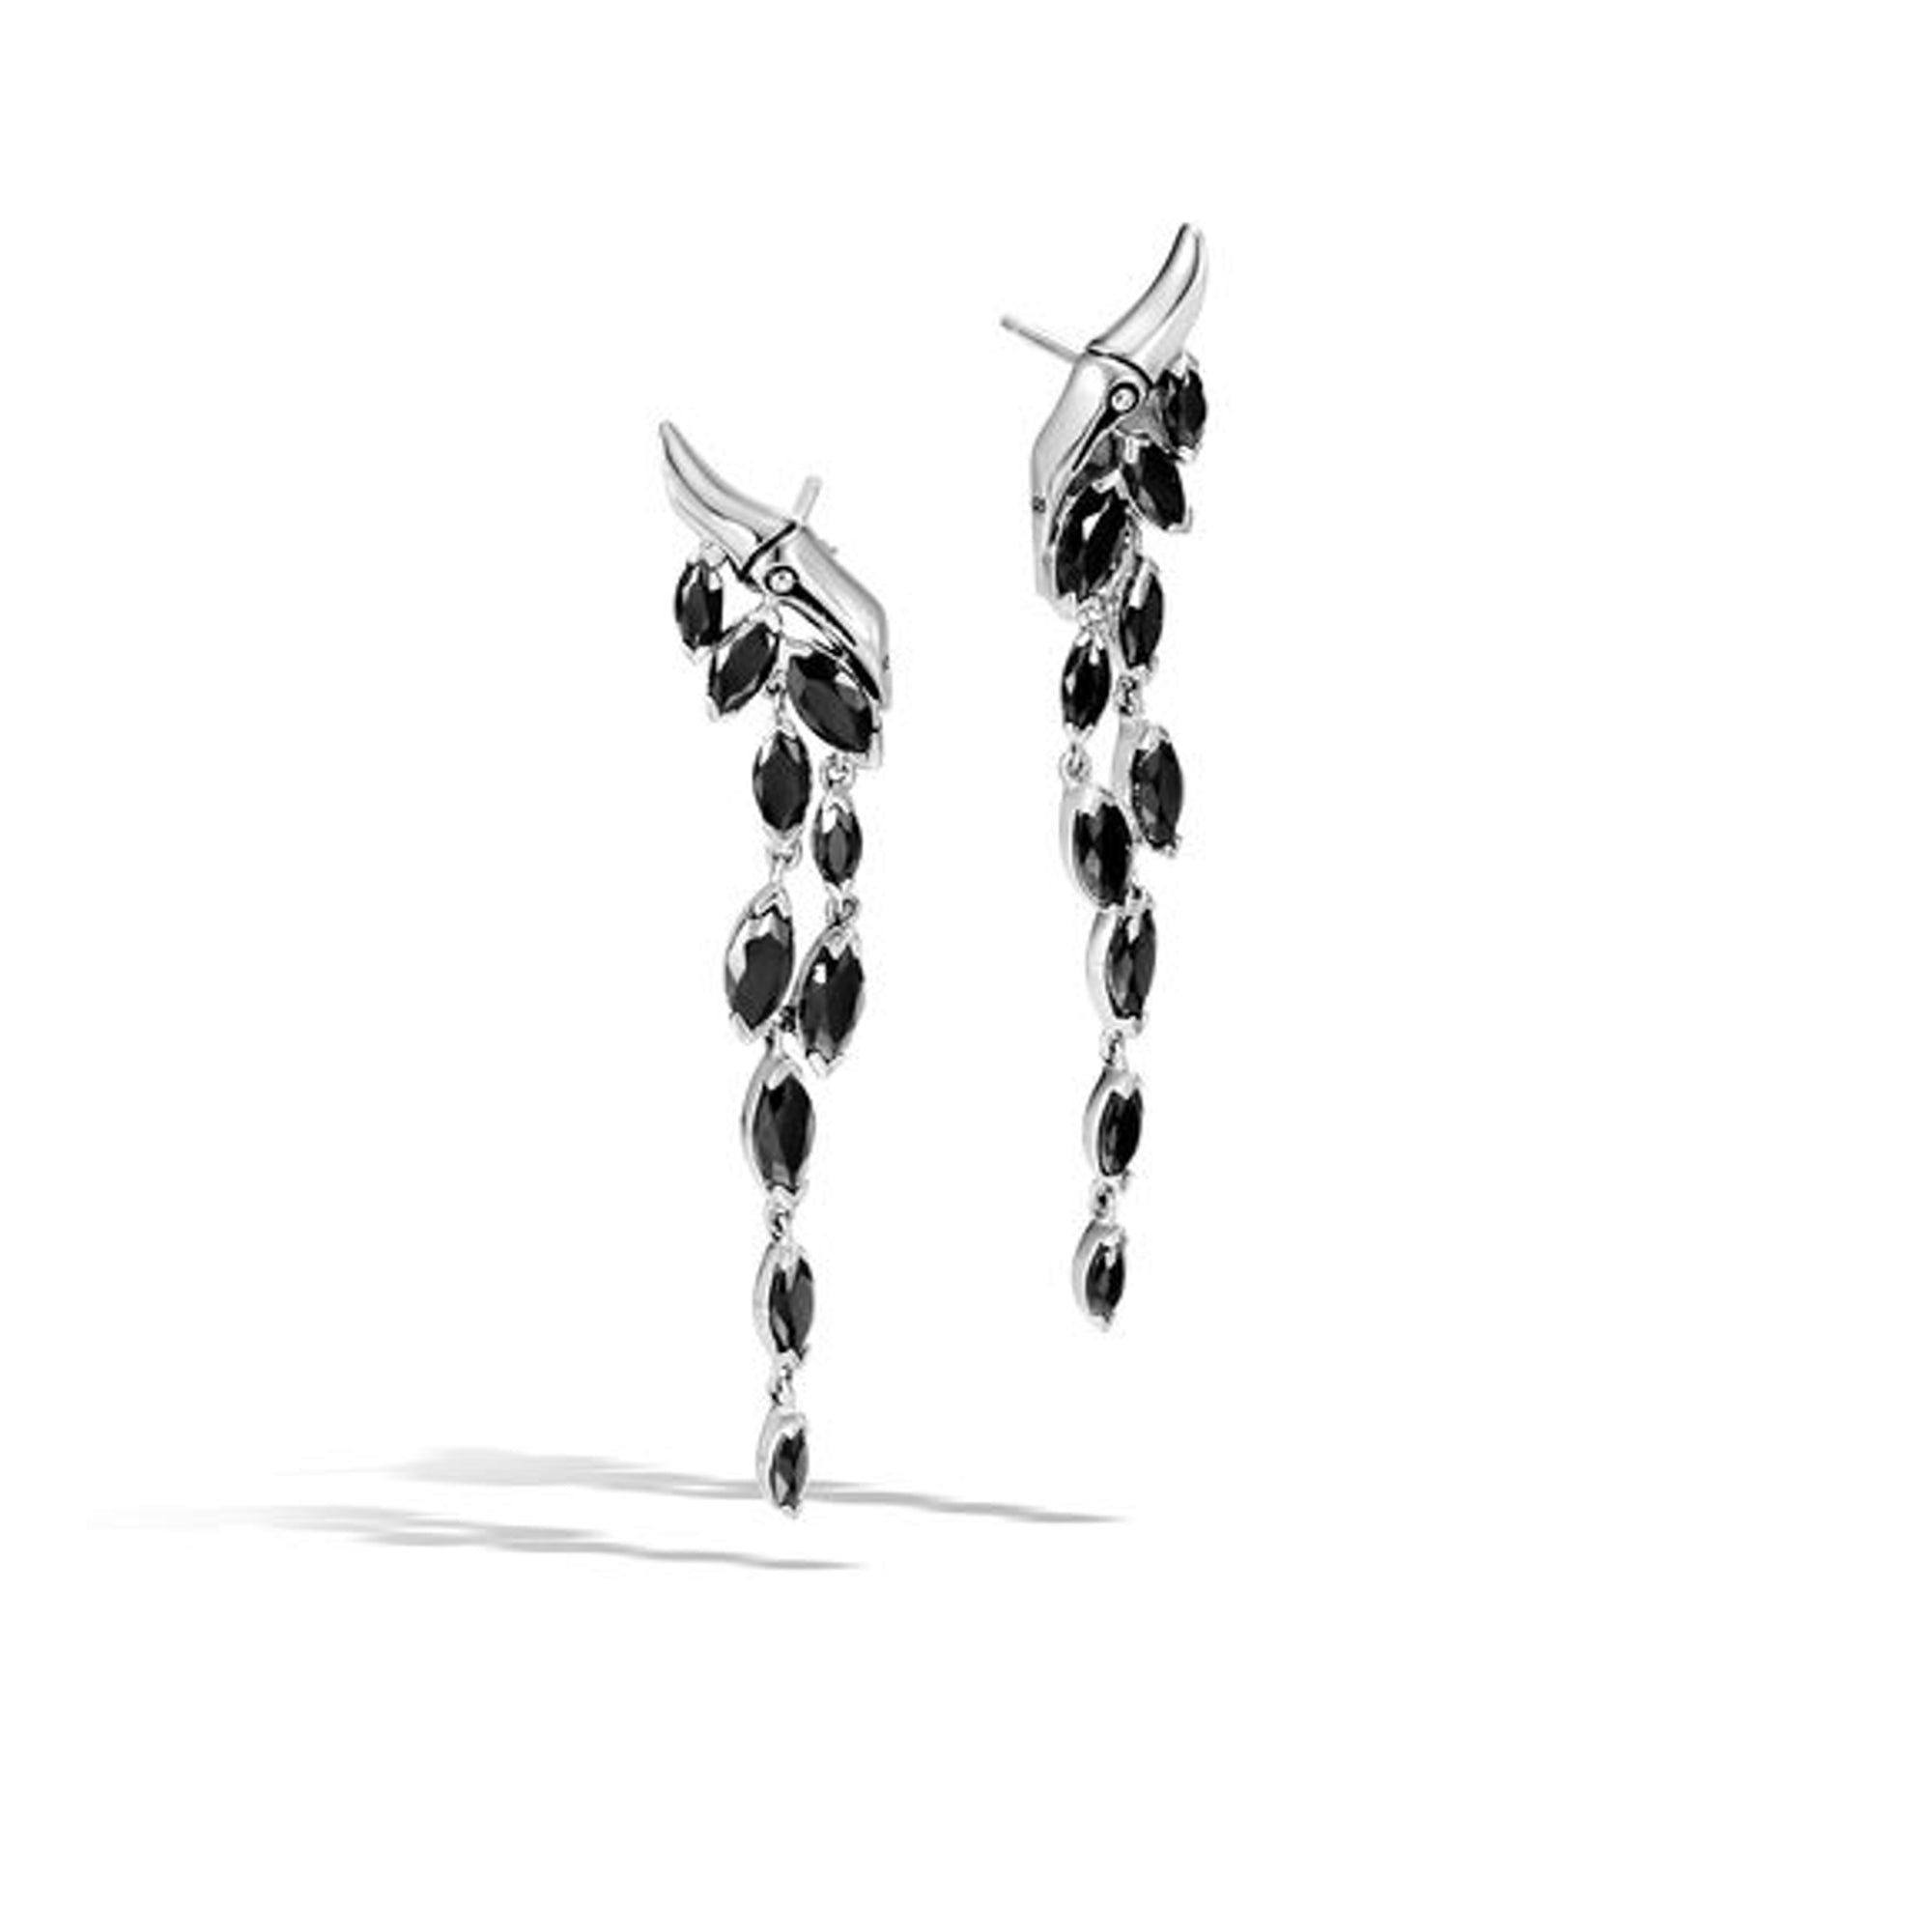 Women's Drop Earrings with Black Spinel